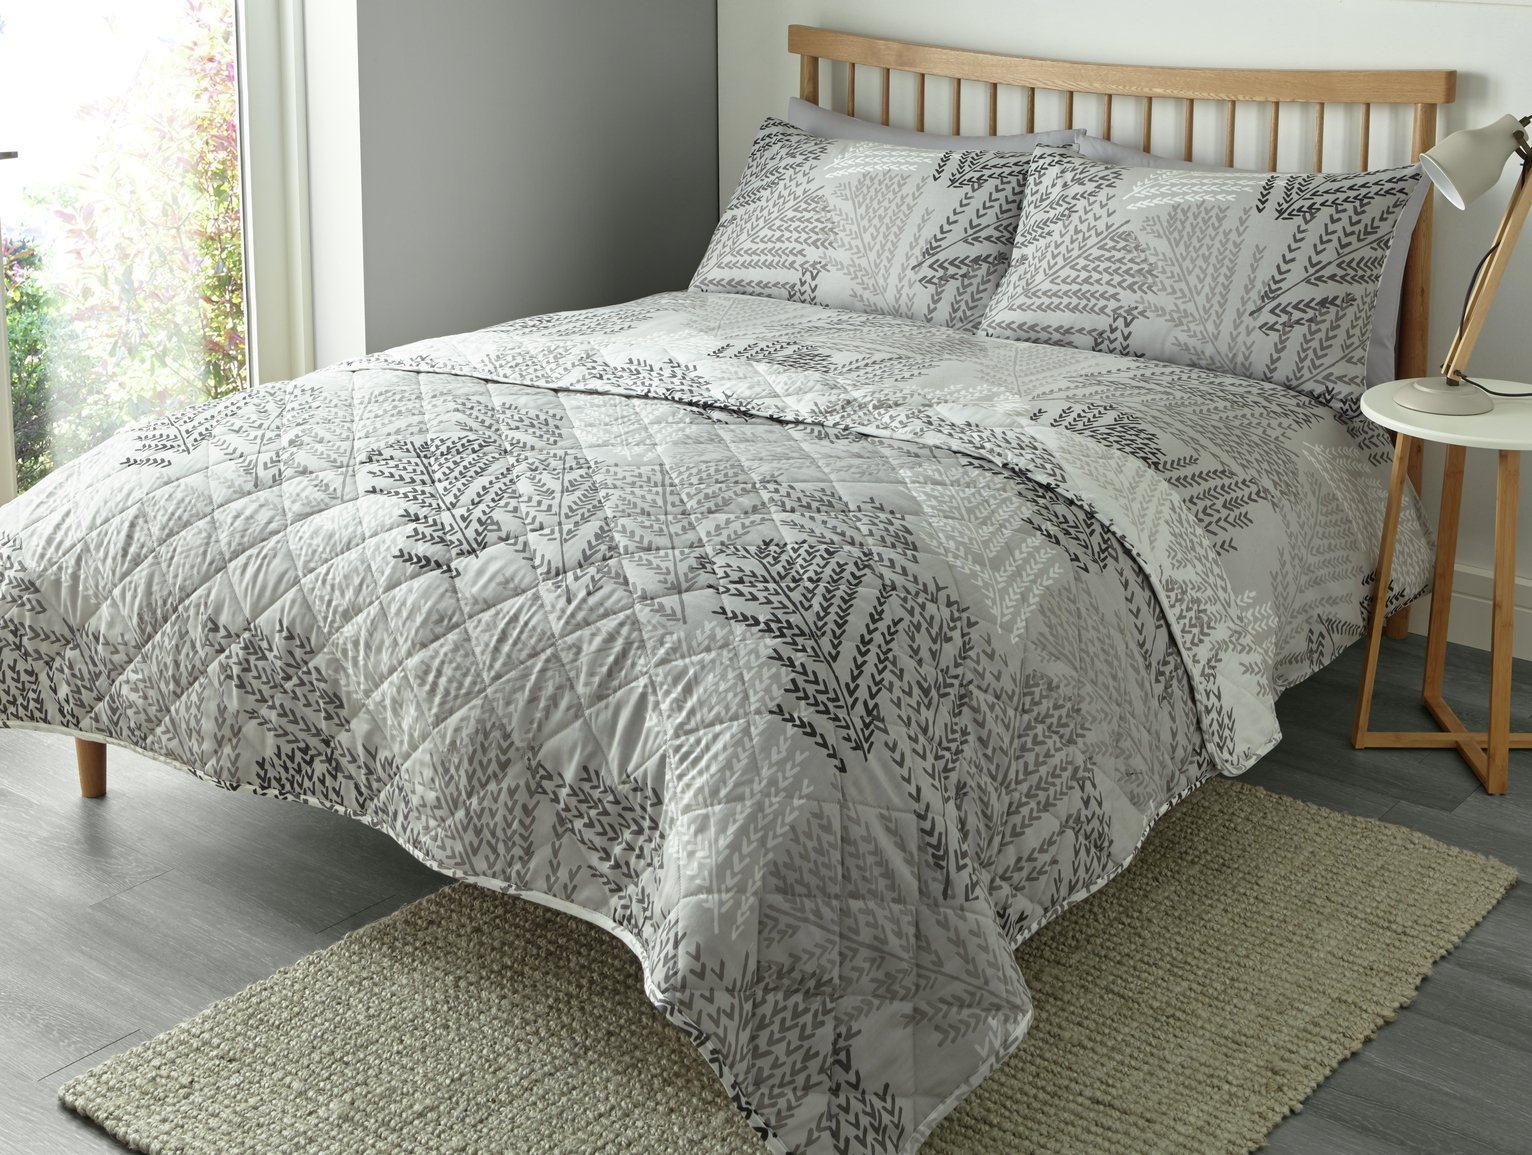 Image of Fusion Alena Silver Bedding Set - Kingsize